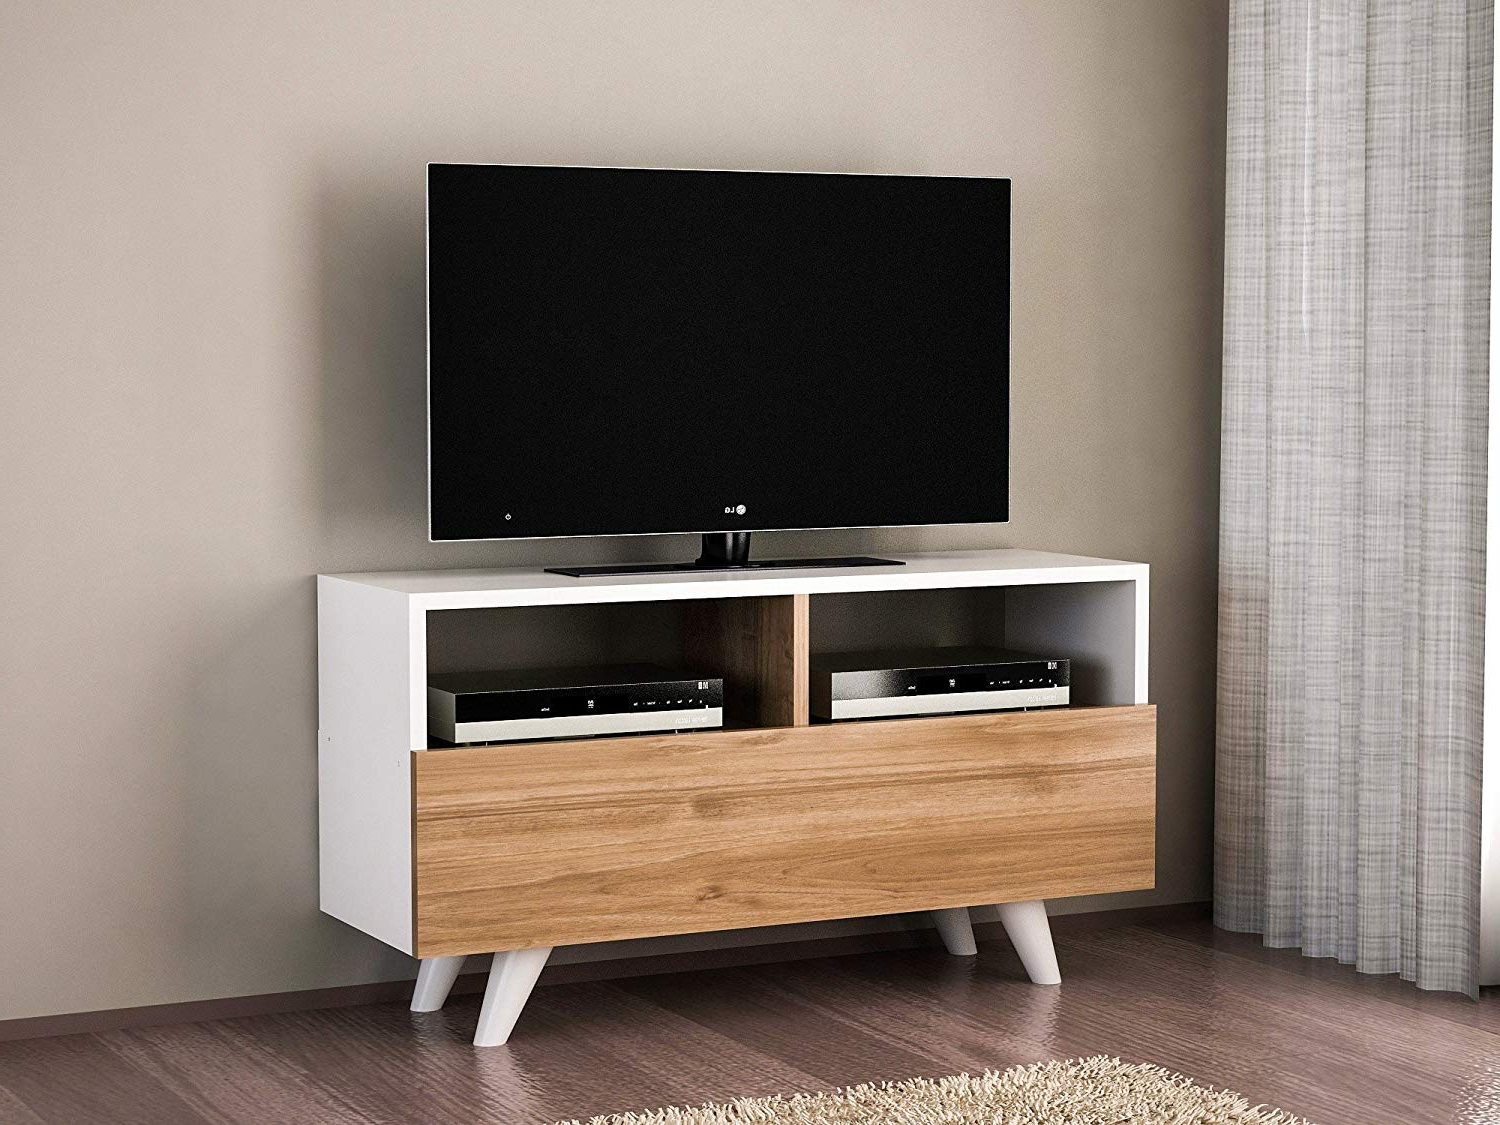 Widely Used Cheap Tv Unit Buy, Find Tv Unit Buy Deals On Line At Alibaba Pertaining To Very Cheap Tv Units (View 7 of 20)